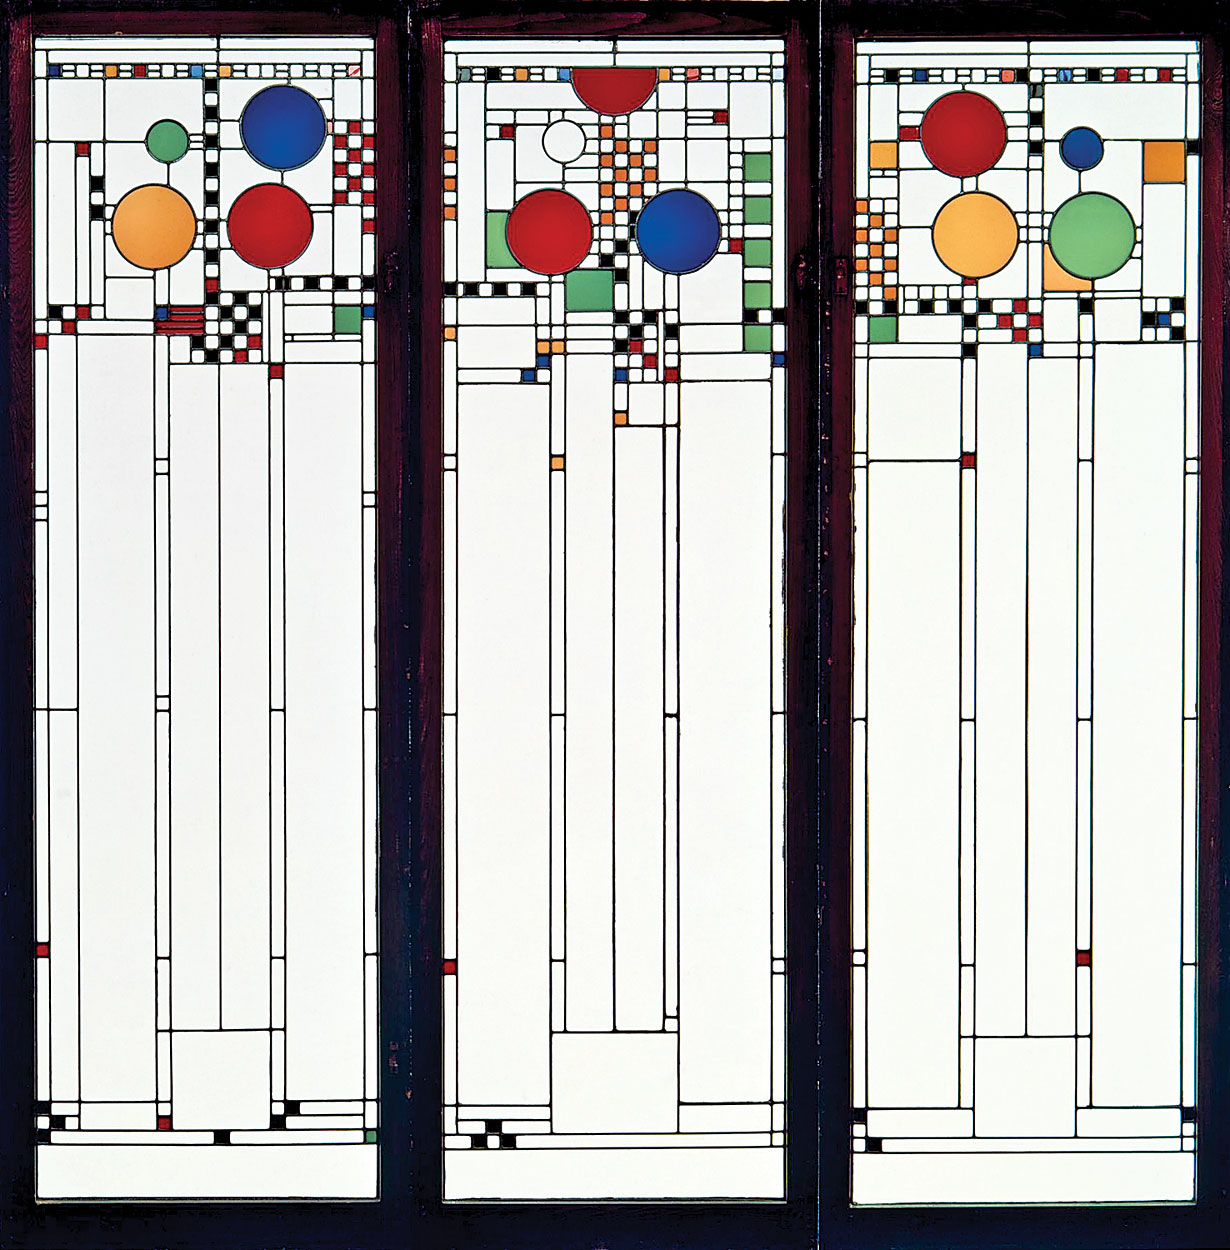 Transom Windows A Useful Design Element: Westosha Art: A Brief History Of The Elements And